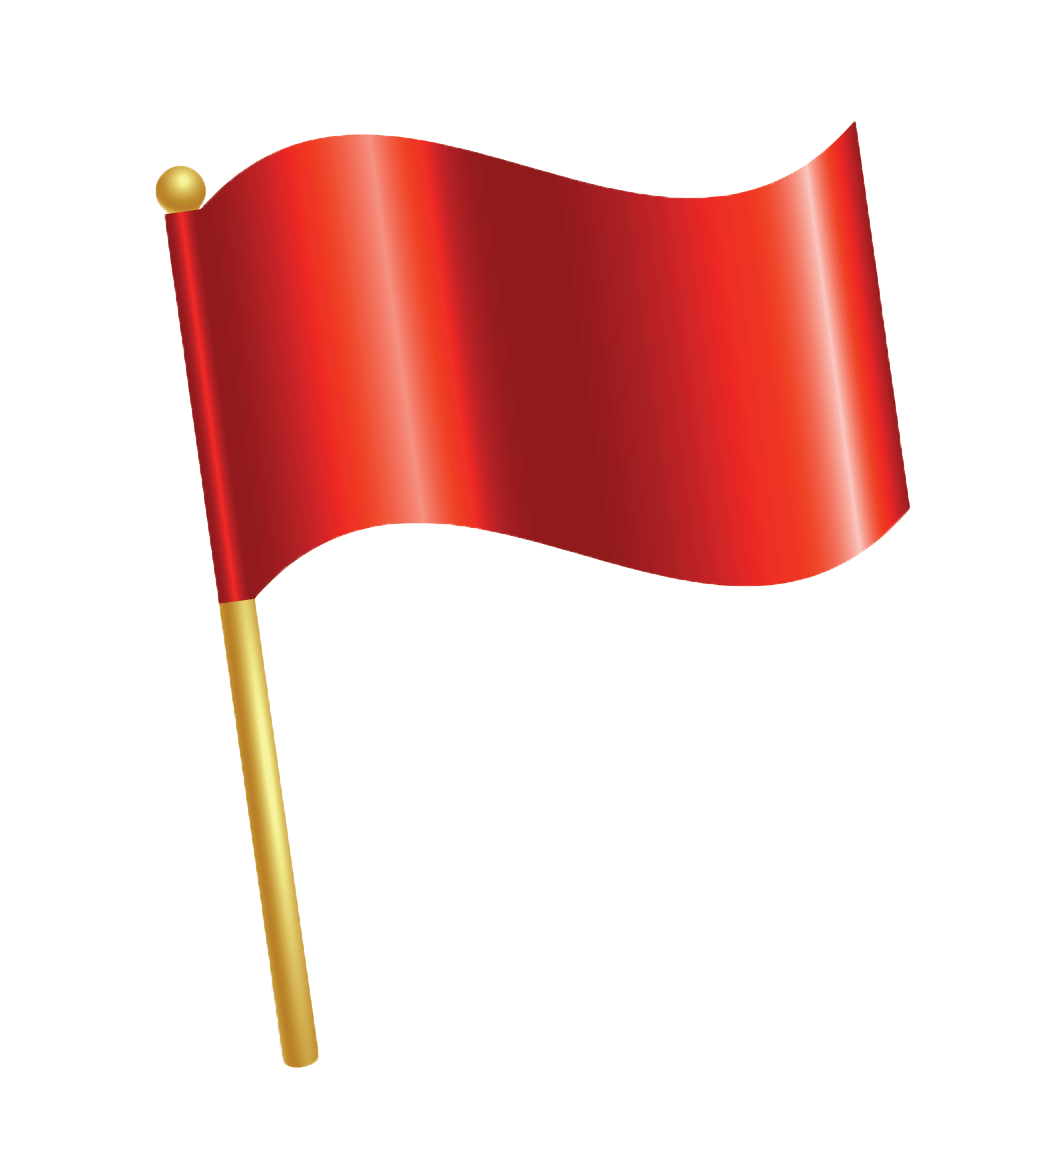 Red Flag Png (+).